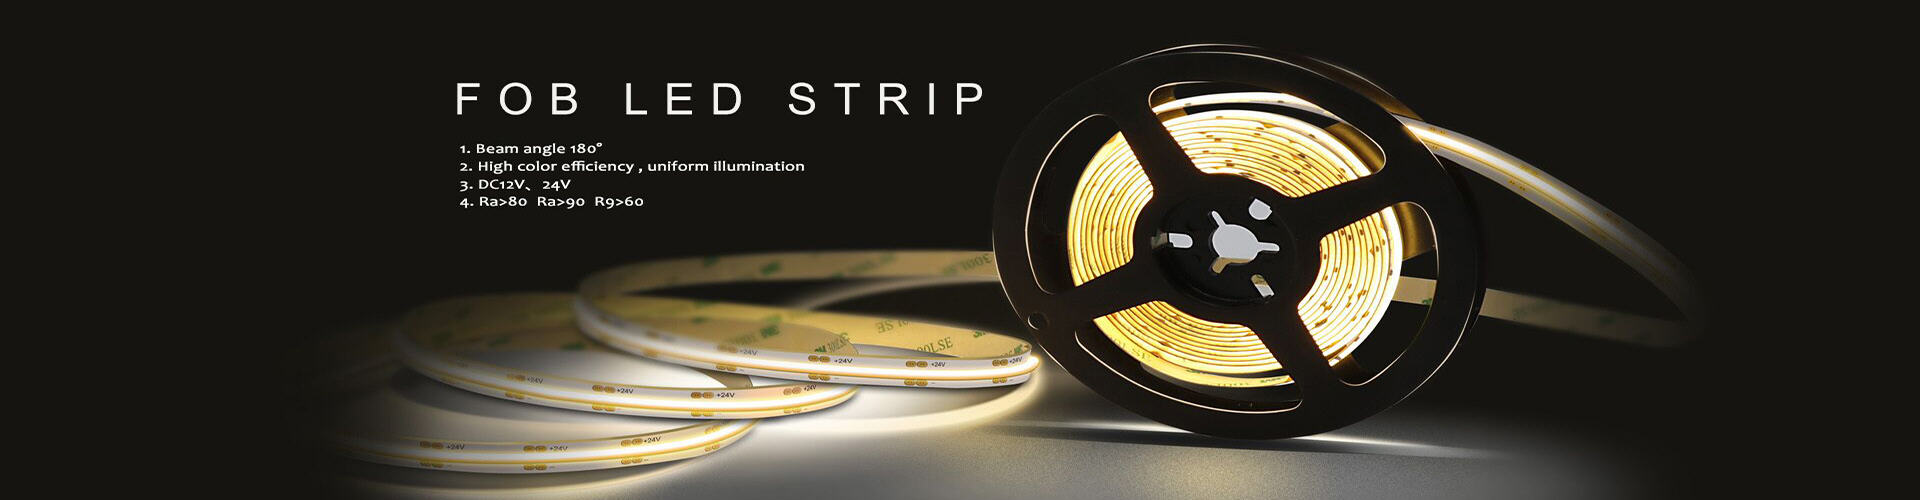 cob led strip, fob led strip, 2216 led strip, led light supplier, China led strip